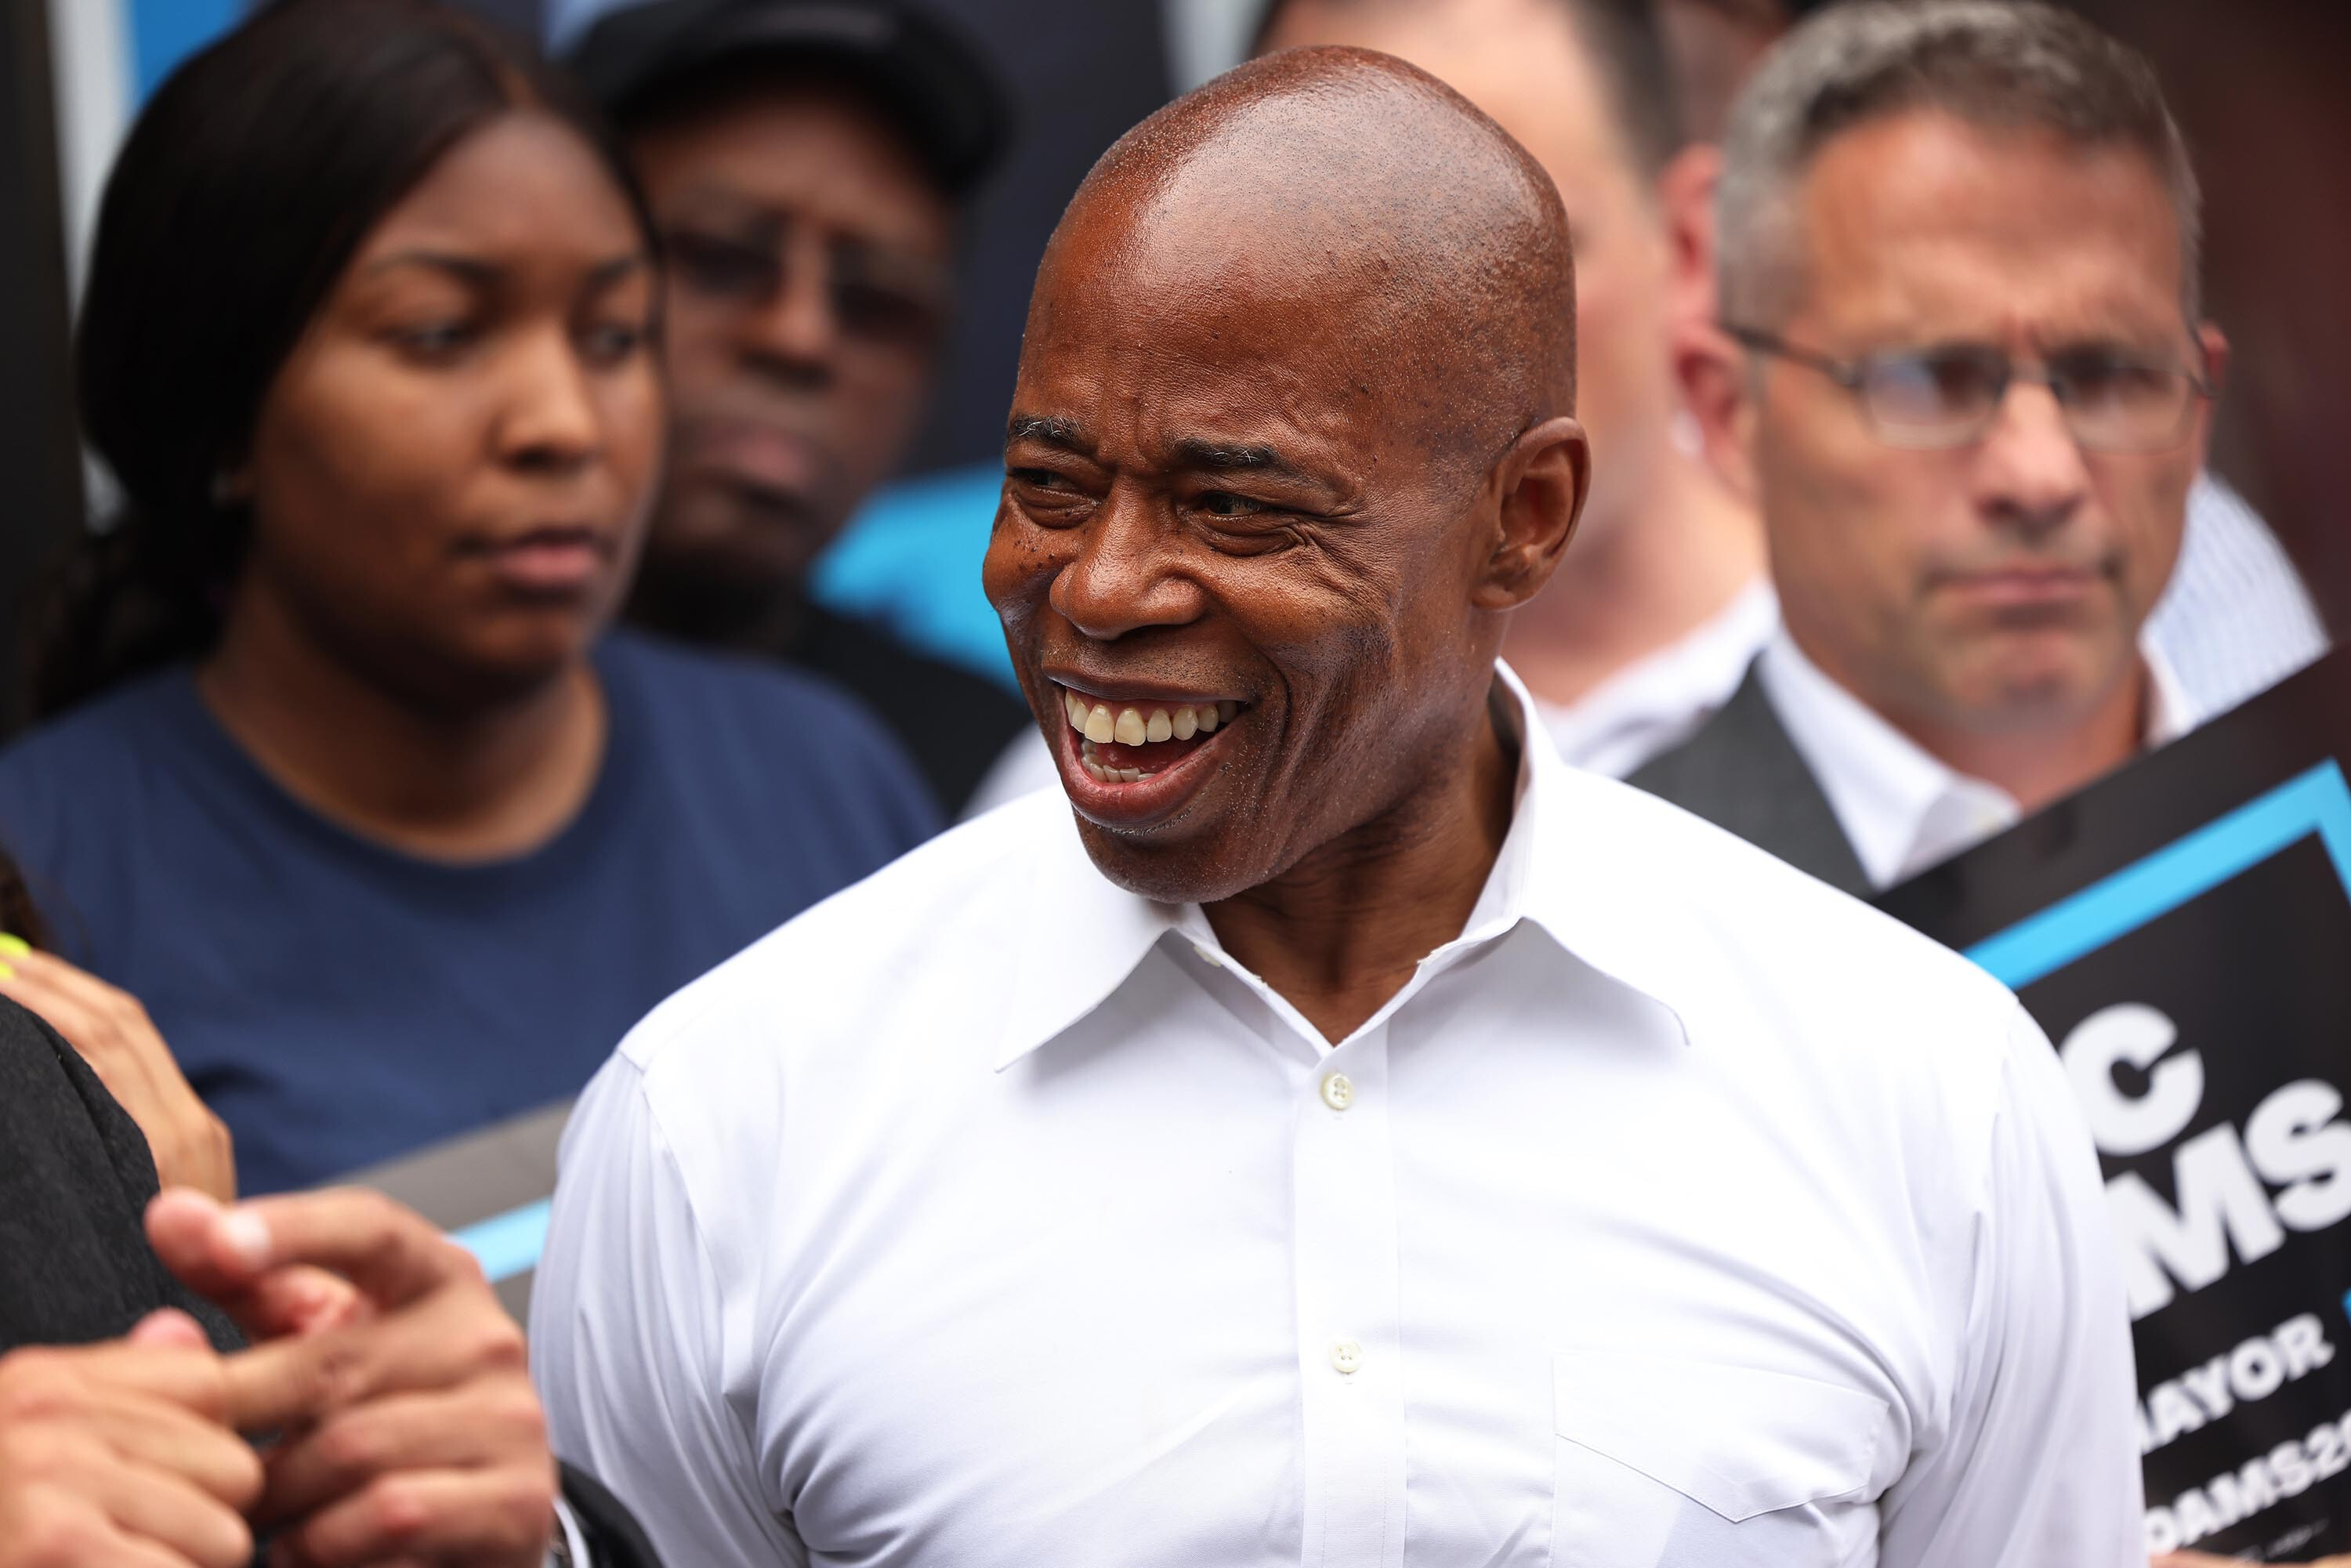 Eric Adams will win Democratic primary for NYC mayor, CNN projects